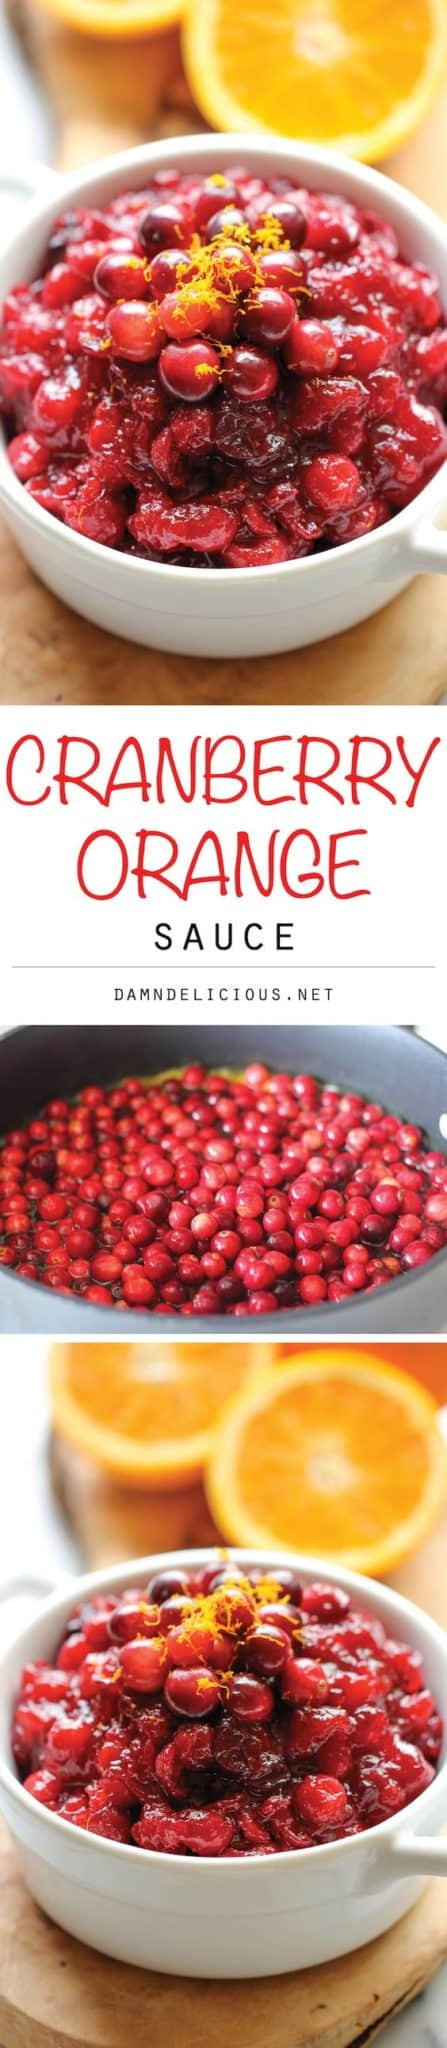 Cranberry-Orange-Sauce-Recipe. 25 Best Thanksgiving recipes for dinner party! Are you hosting Thanksgiving this year? Get your cooking inspiration in Thanksgiving food, side dishes, find some stuffing recipes for Thanksgiving.